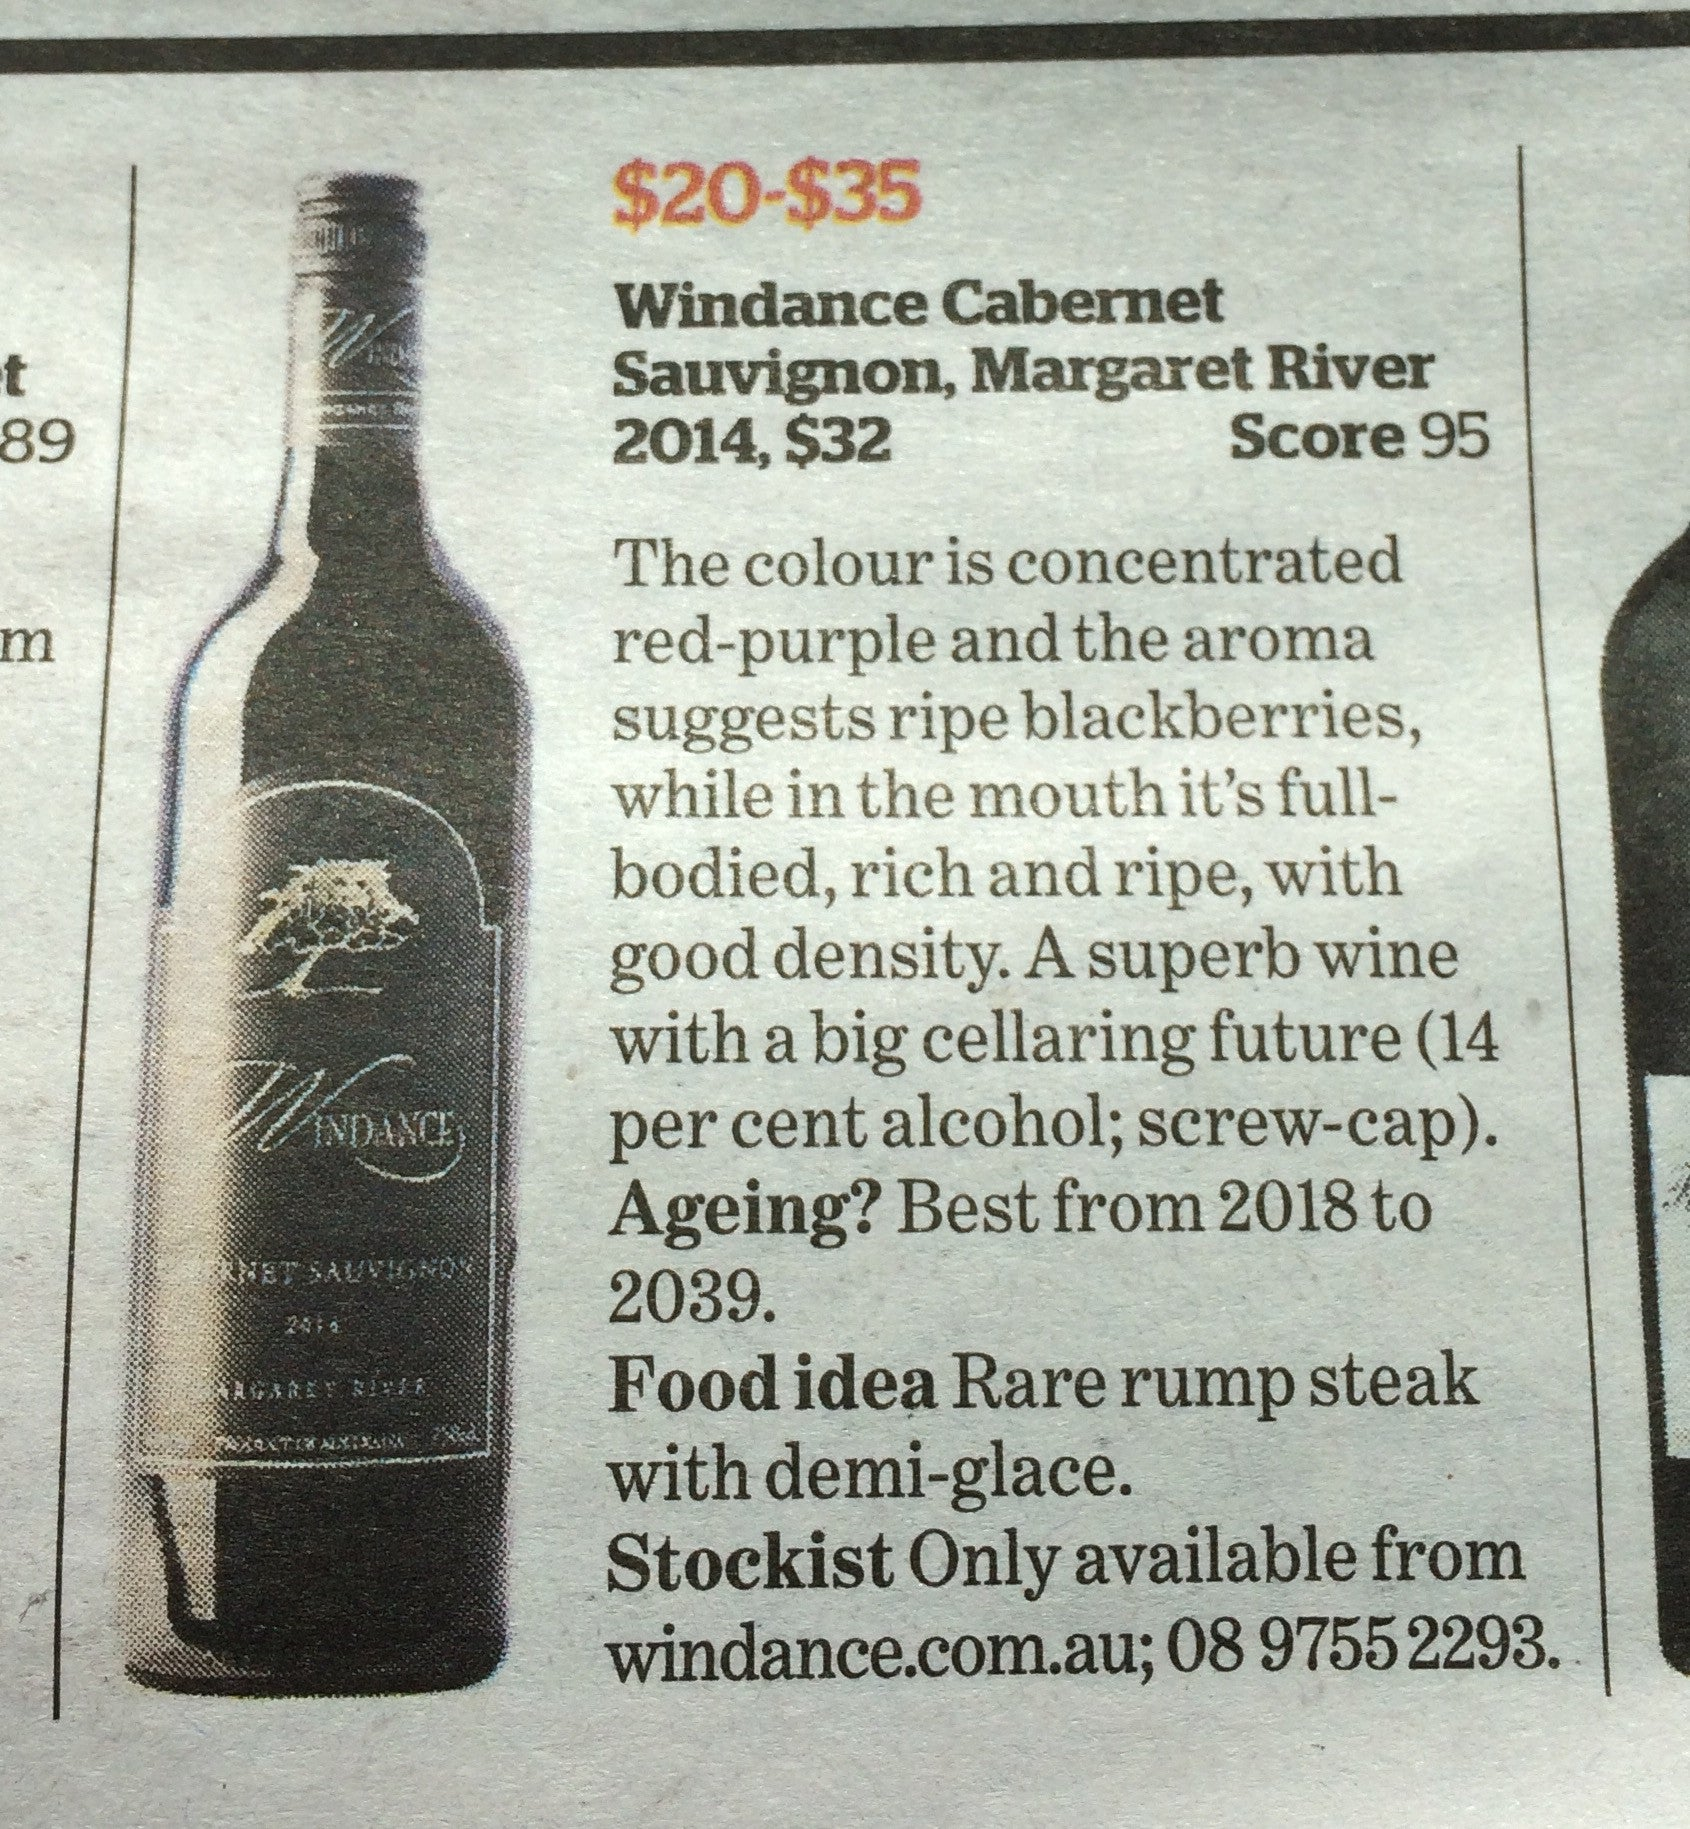 95 points - 2014 Cabernet Sauvignon - The Age & Sydney Morning Herald